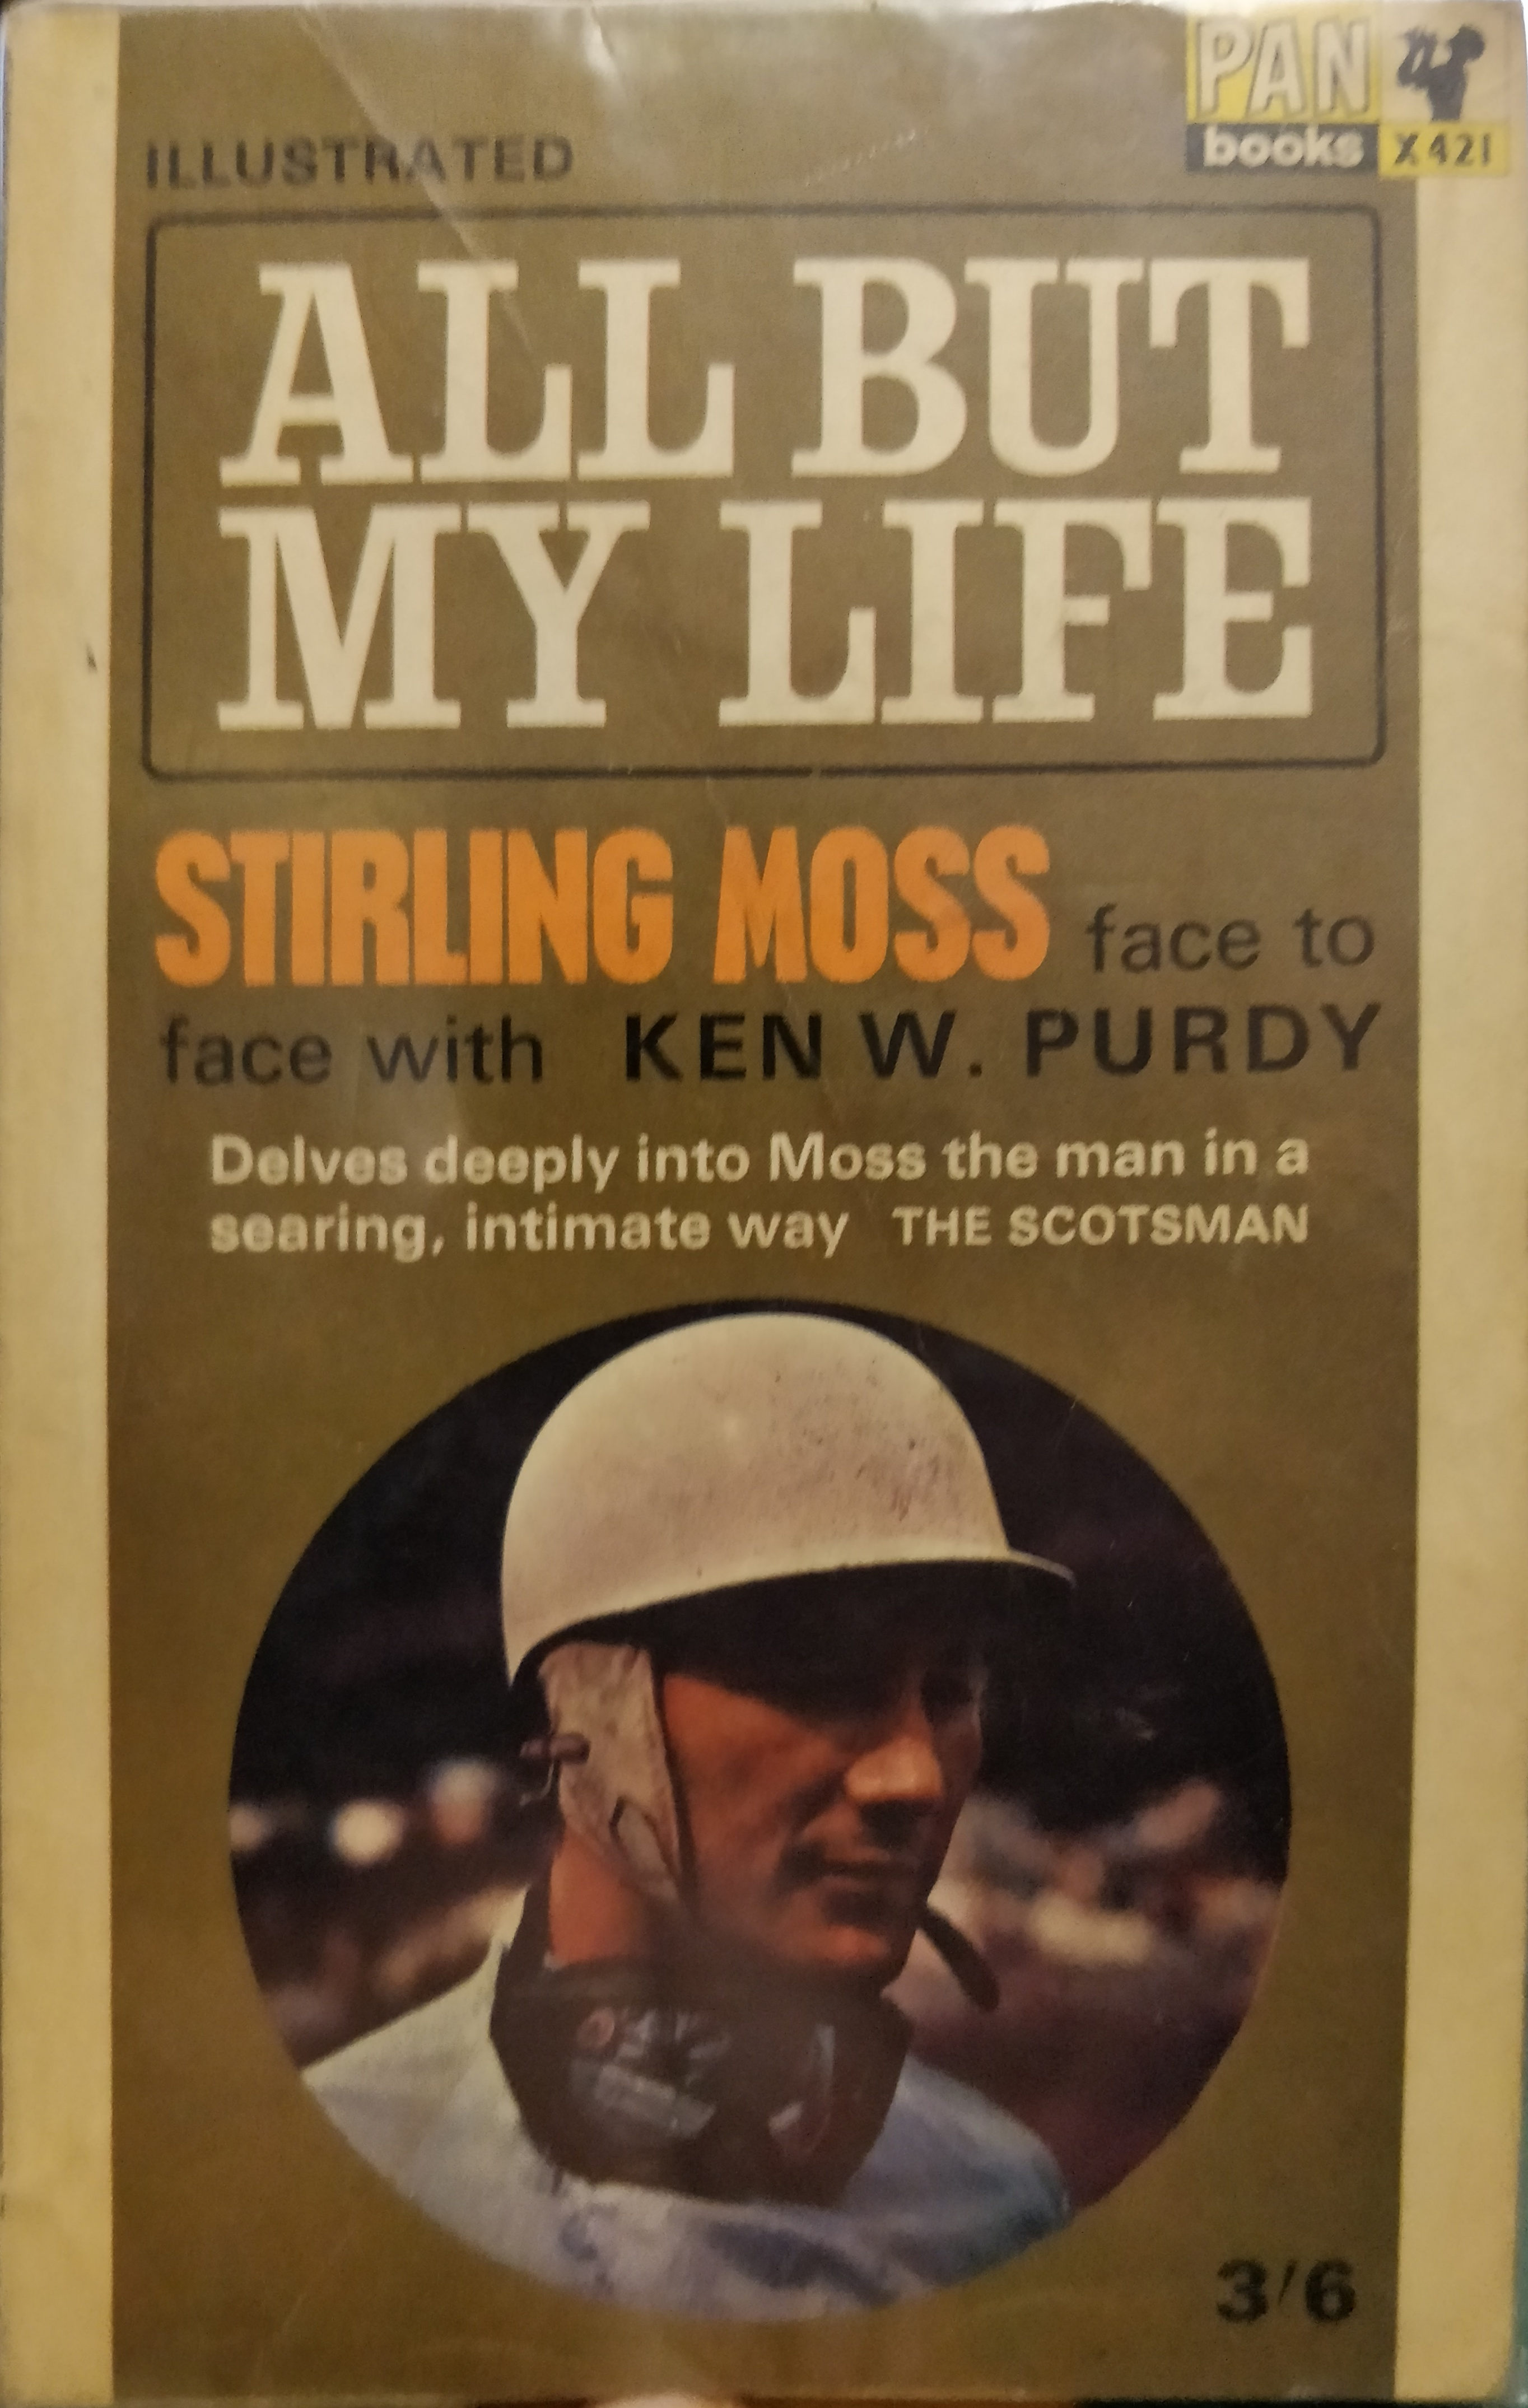 Moss Stirling - All But My Life - Pan X421